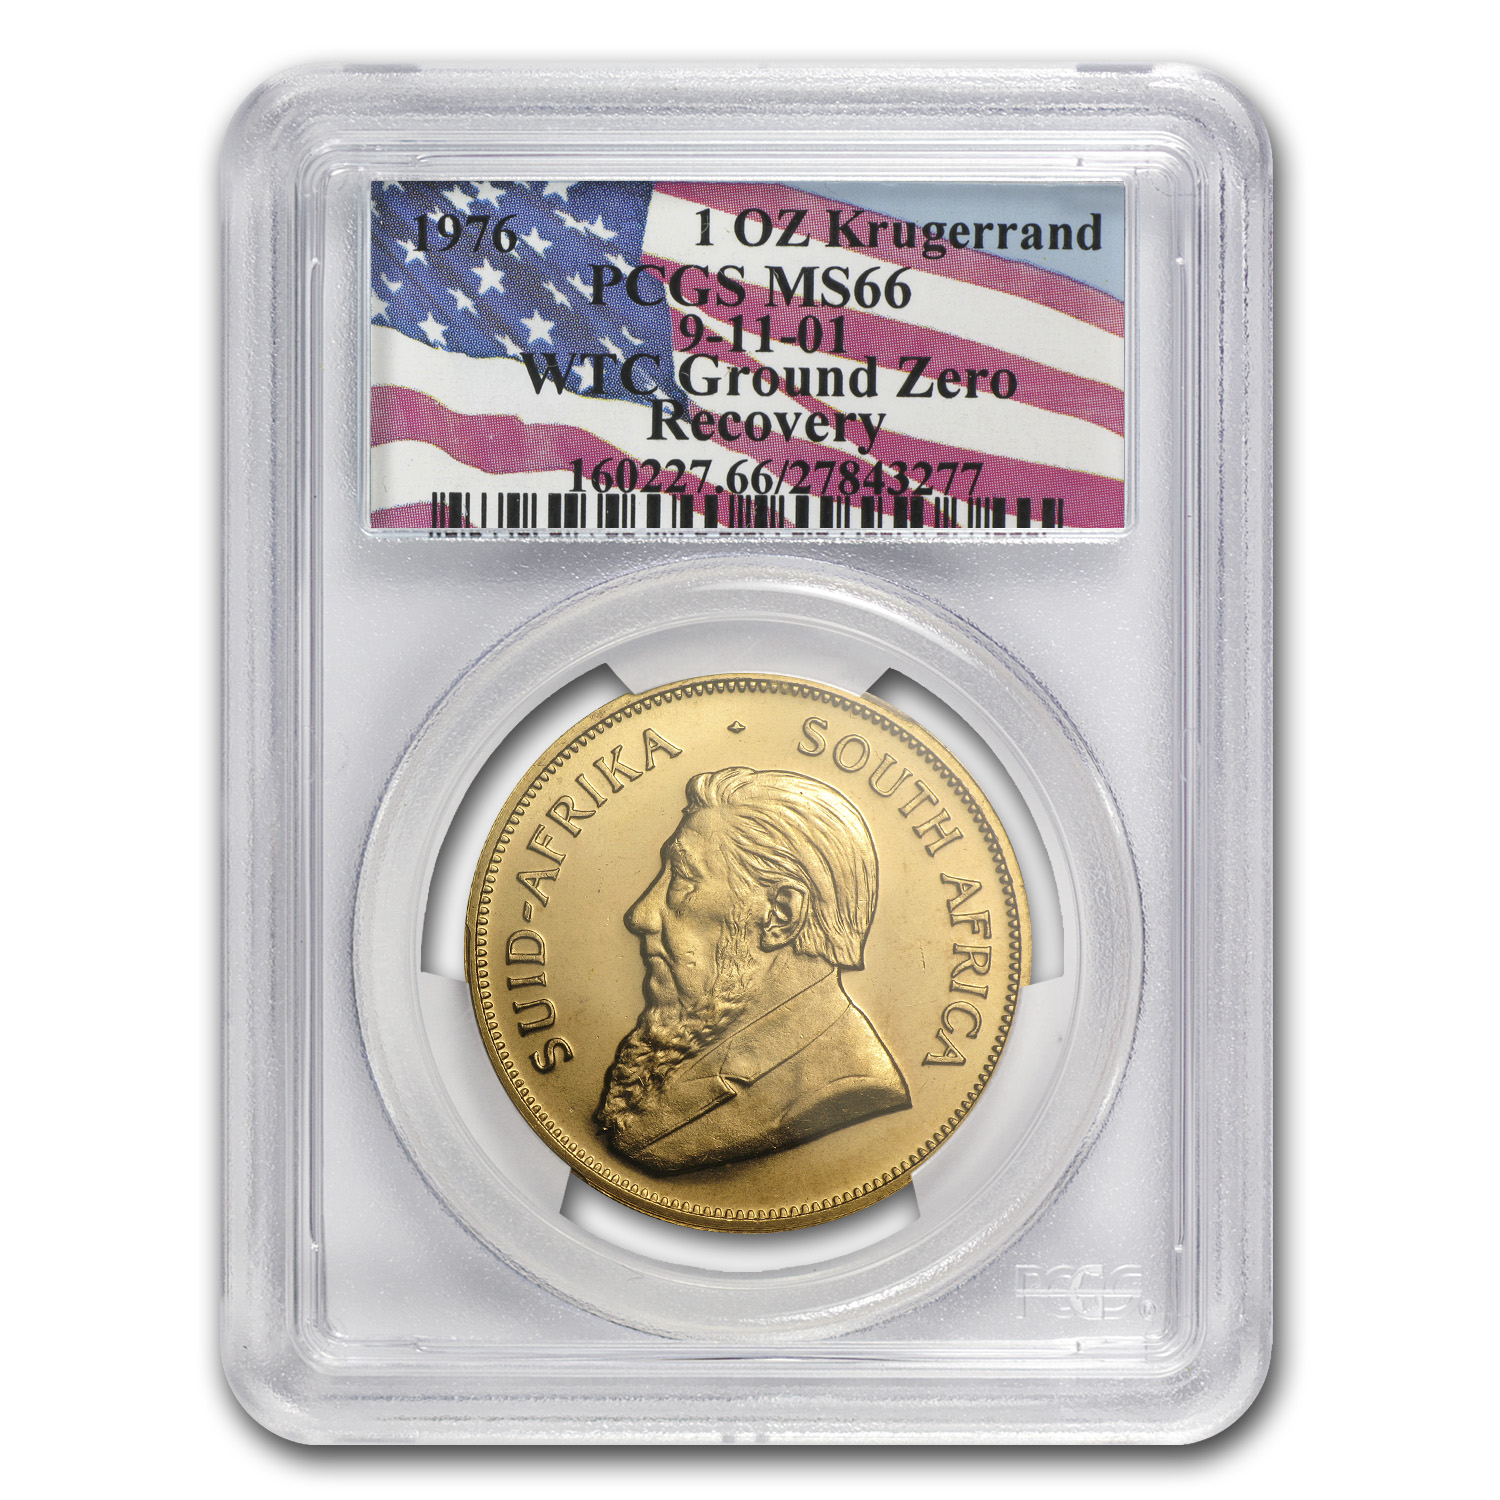 1976 South Africa 1 oz Gold Krugerrand MS-66 PCGS (WTC)